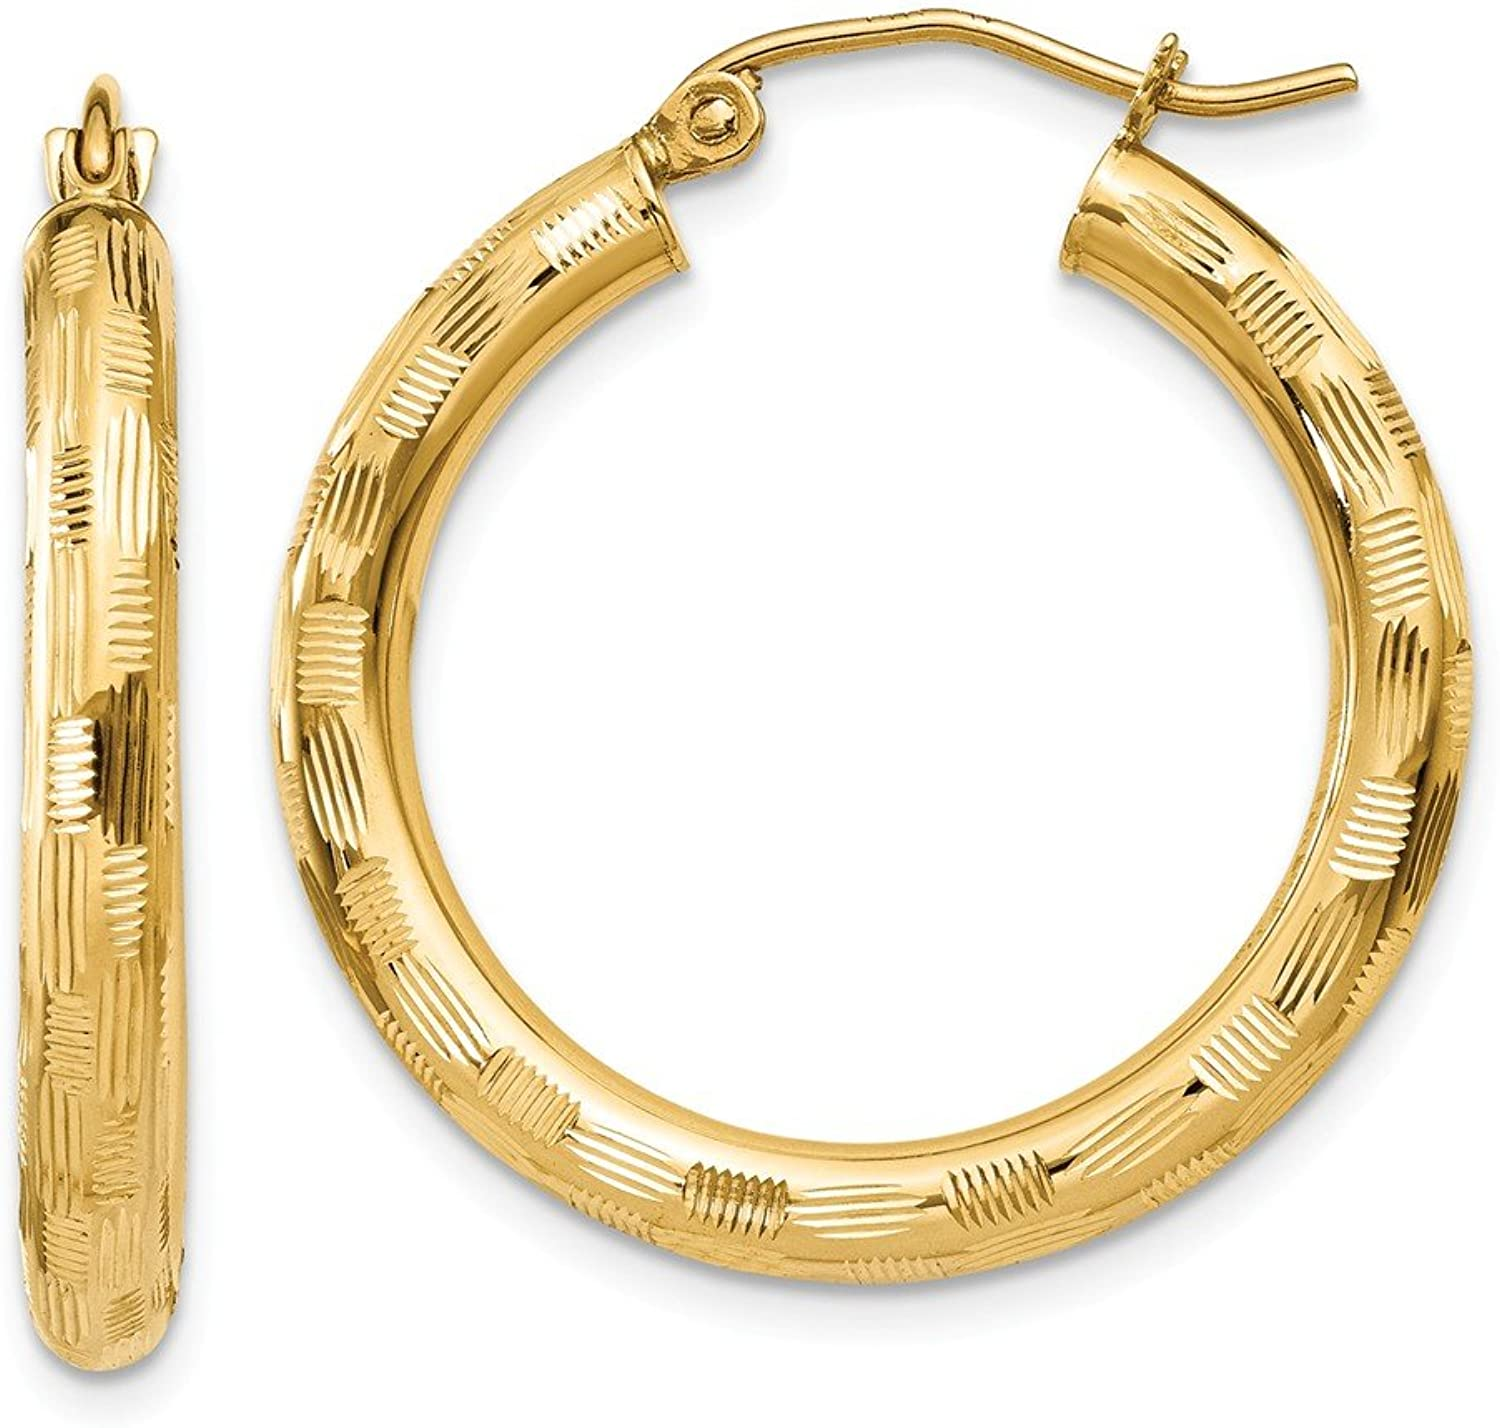 Beautiful Yellow gold 14K Yellowgold 14k Textured Hoop Earrings